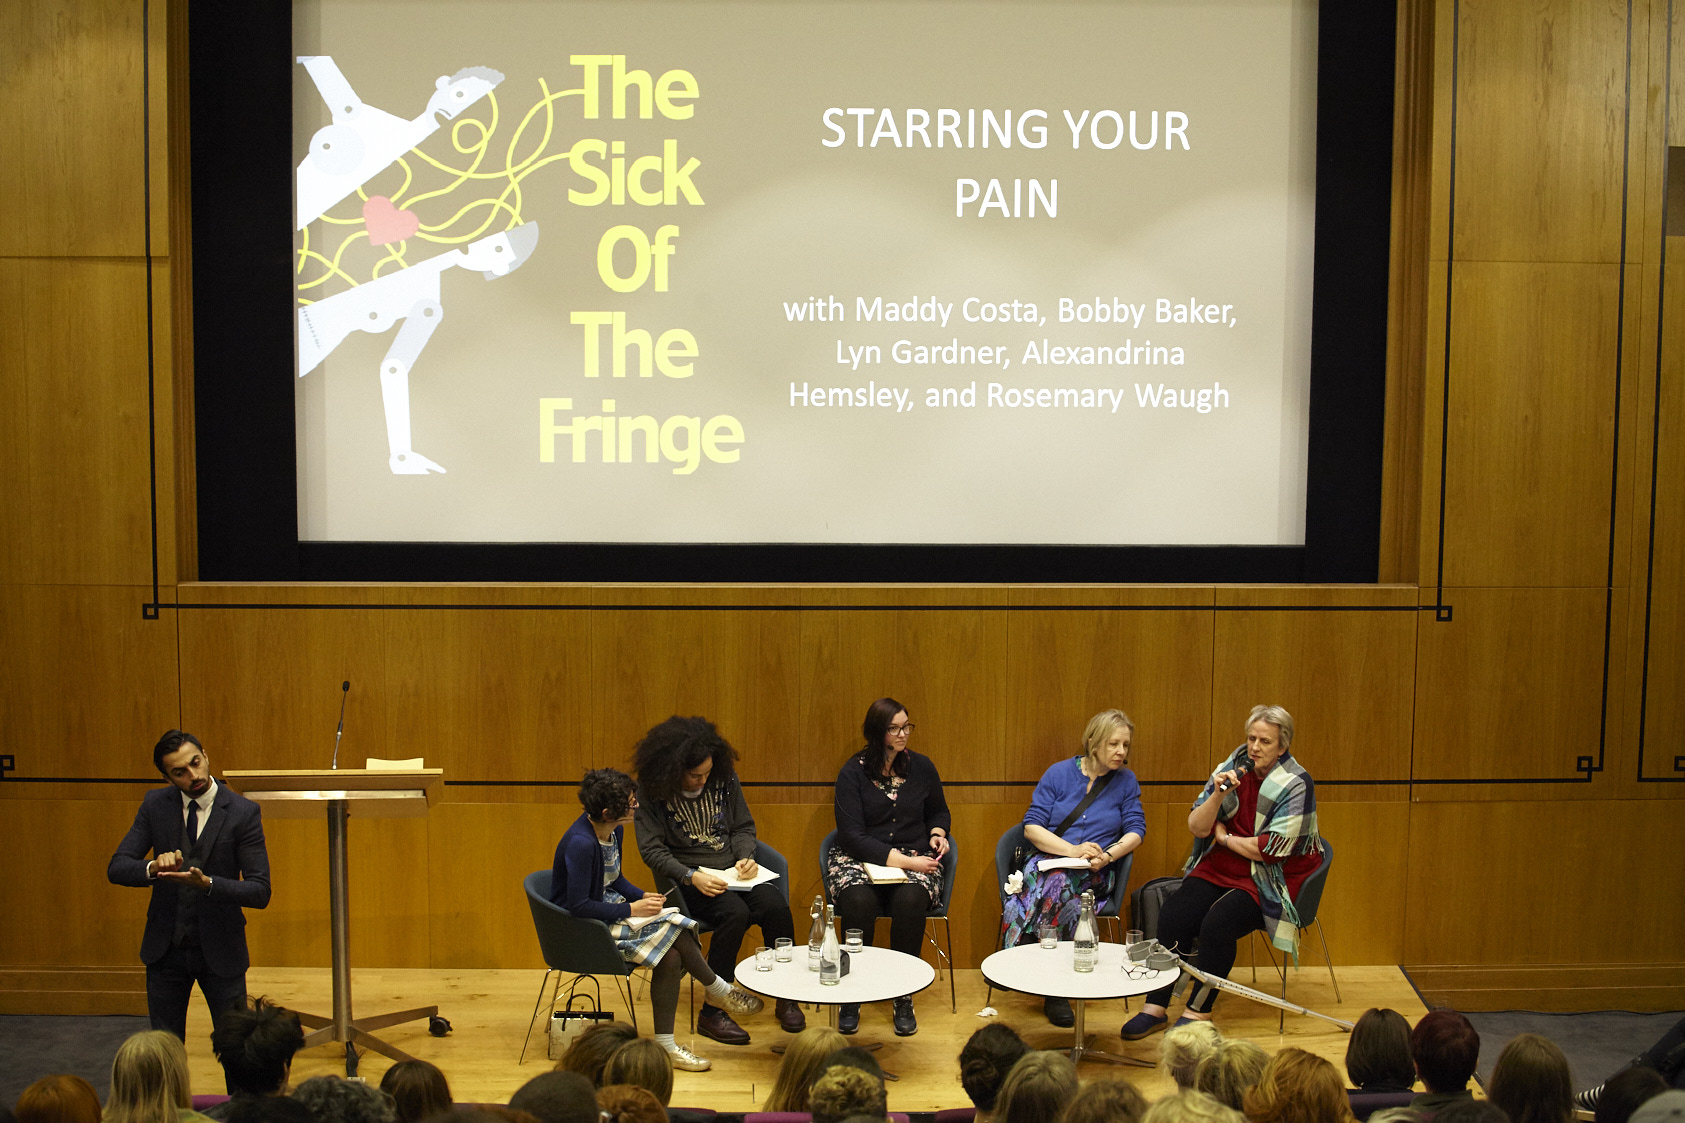 Starring Your Pain panel discussion interpreted by Kam Deo. Image by Manuel Vason.